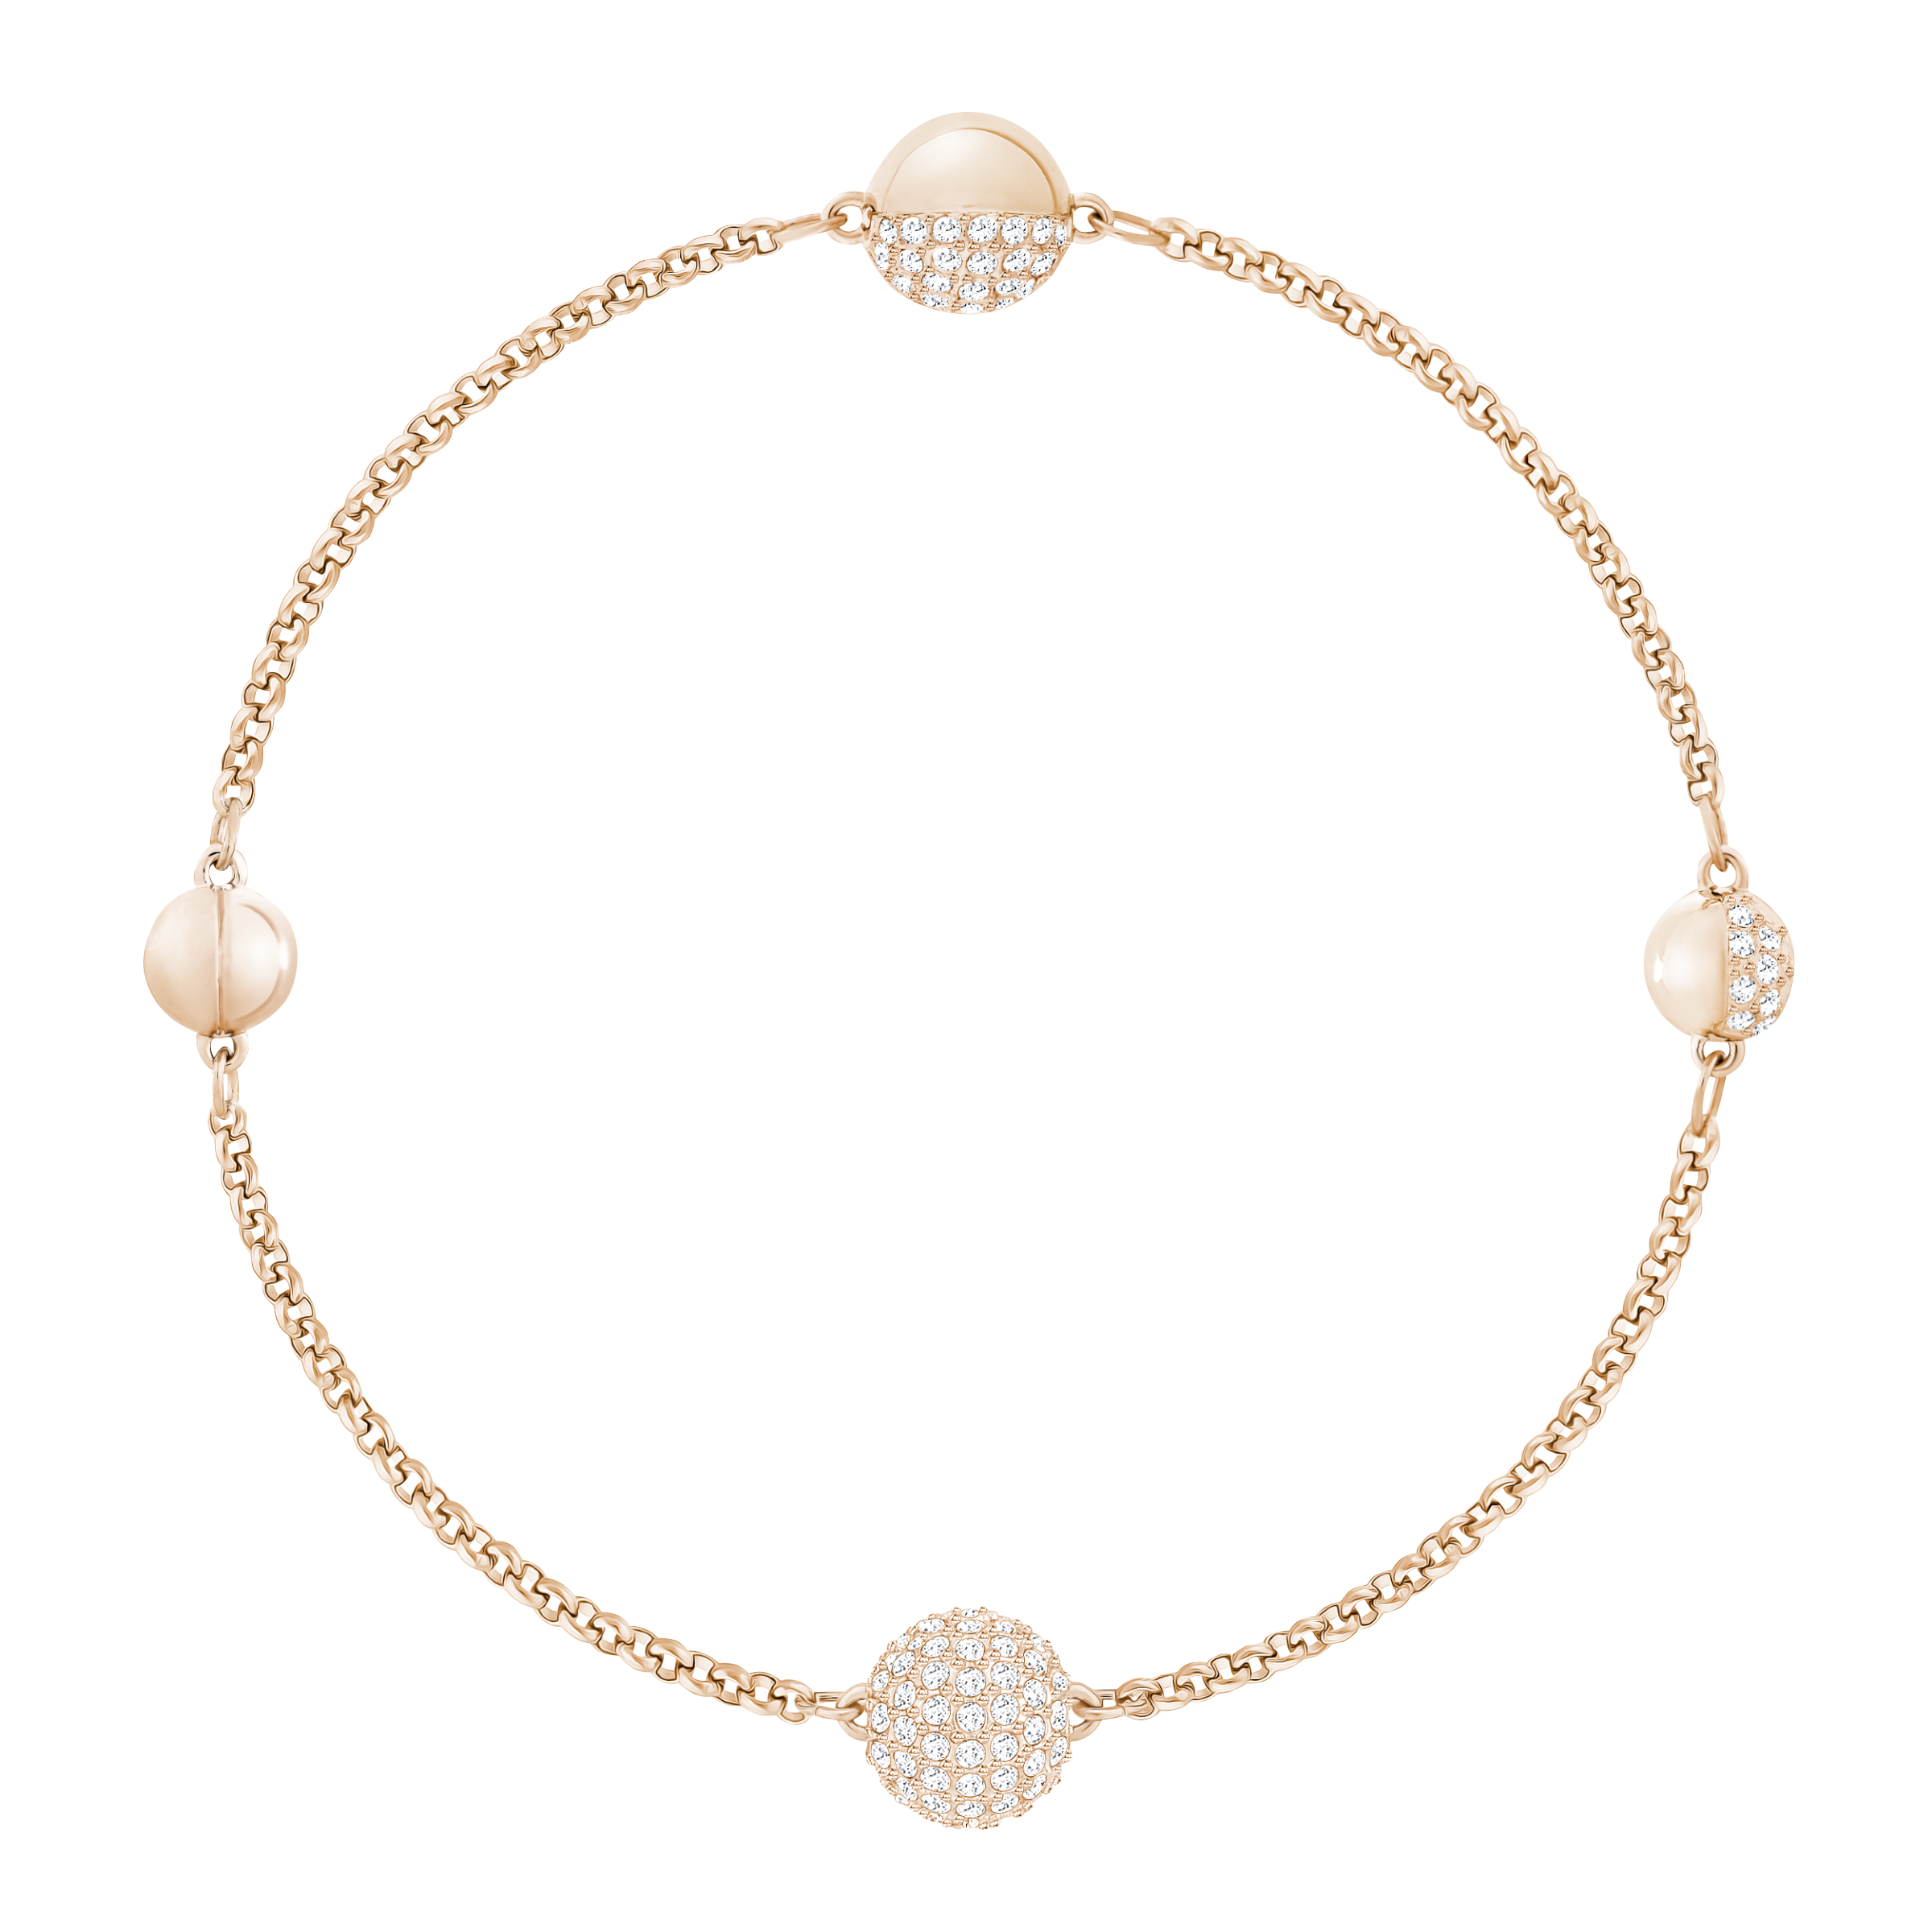 Swarovski Remix Collection The Round Strand, White, Rose-gold plated